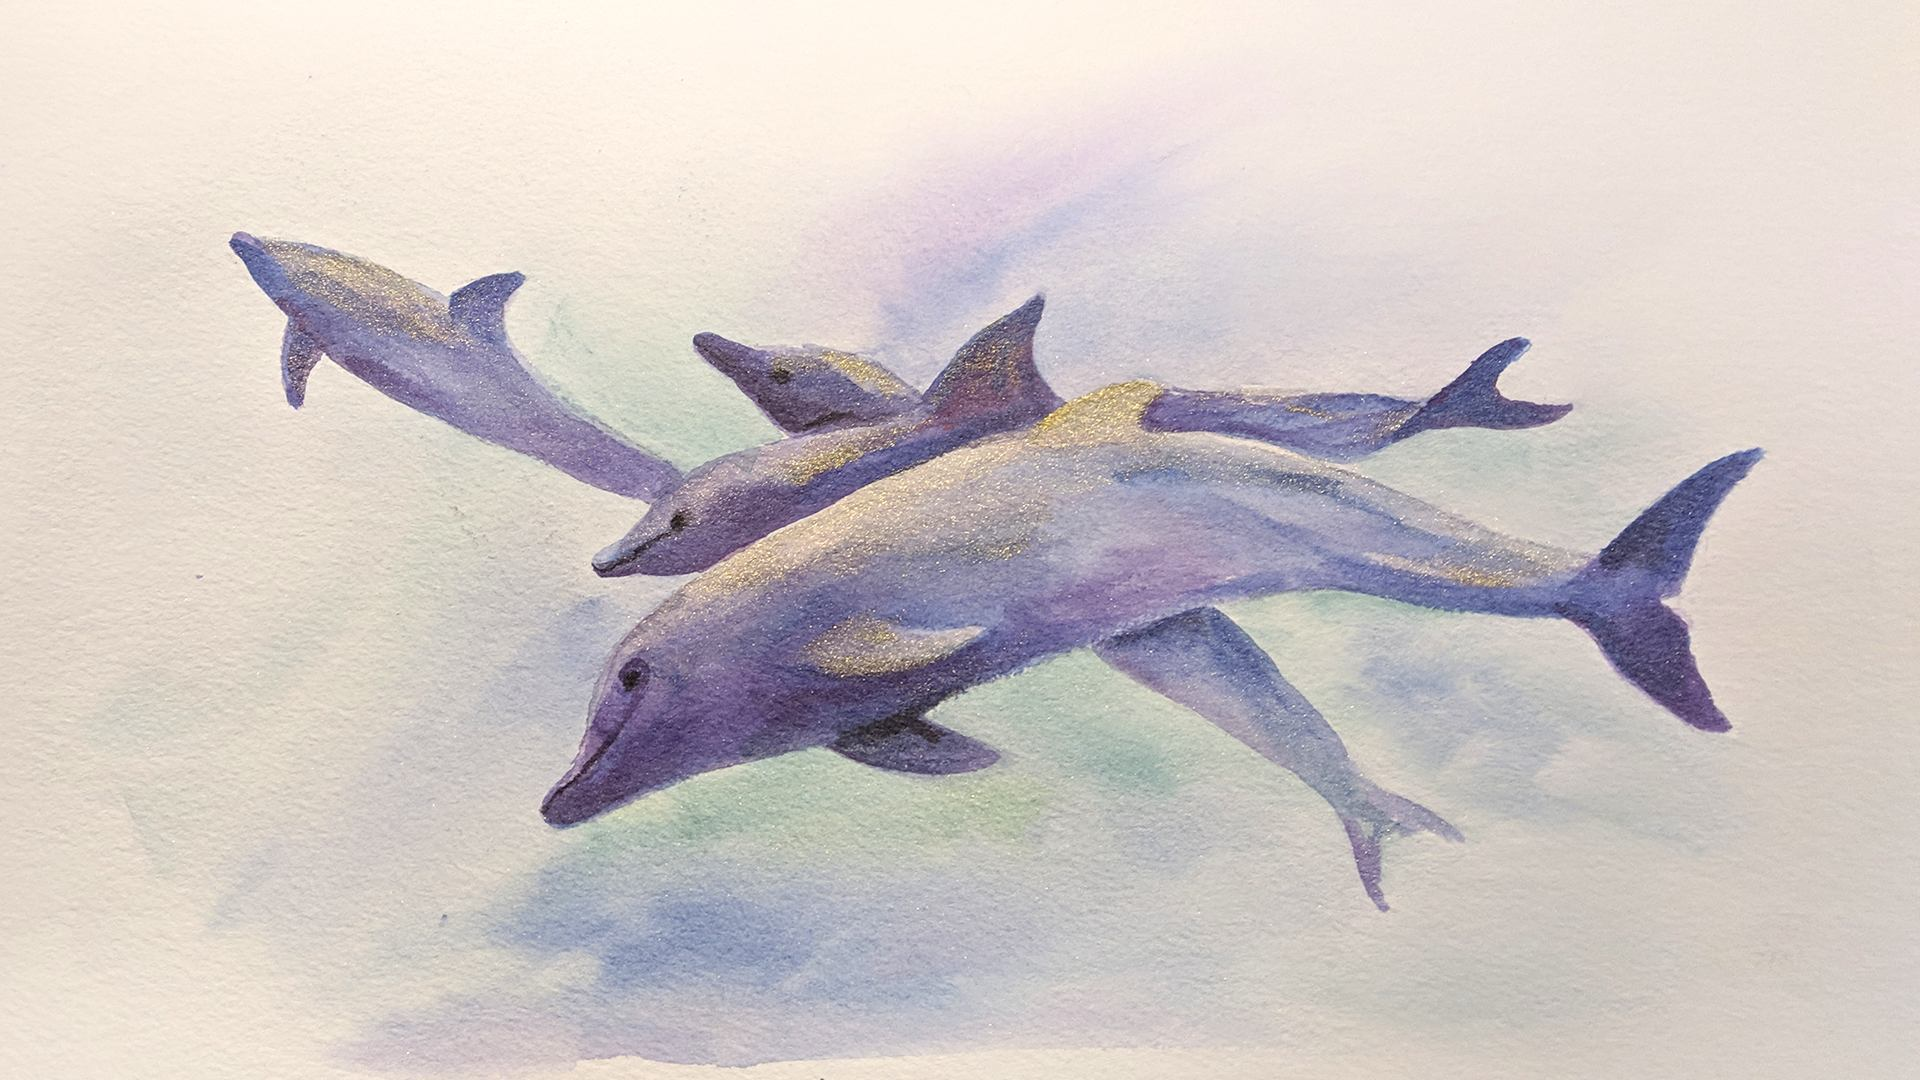 Live with Anita Pounder – Diving Dolphins in Derwent Metallic Watercolours